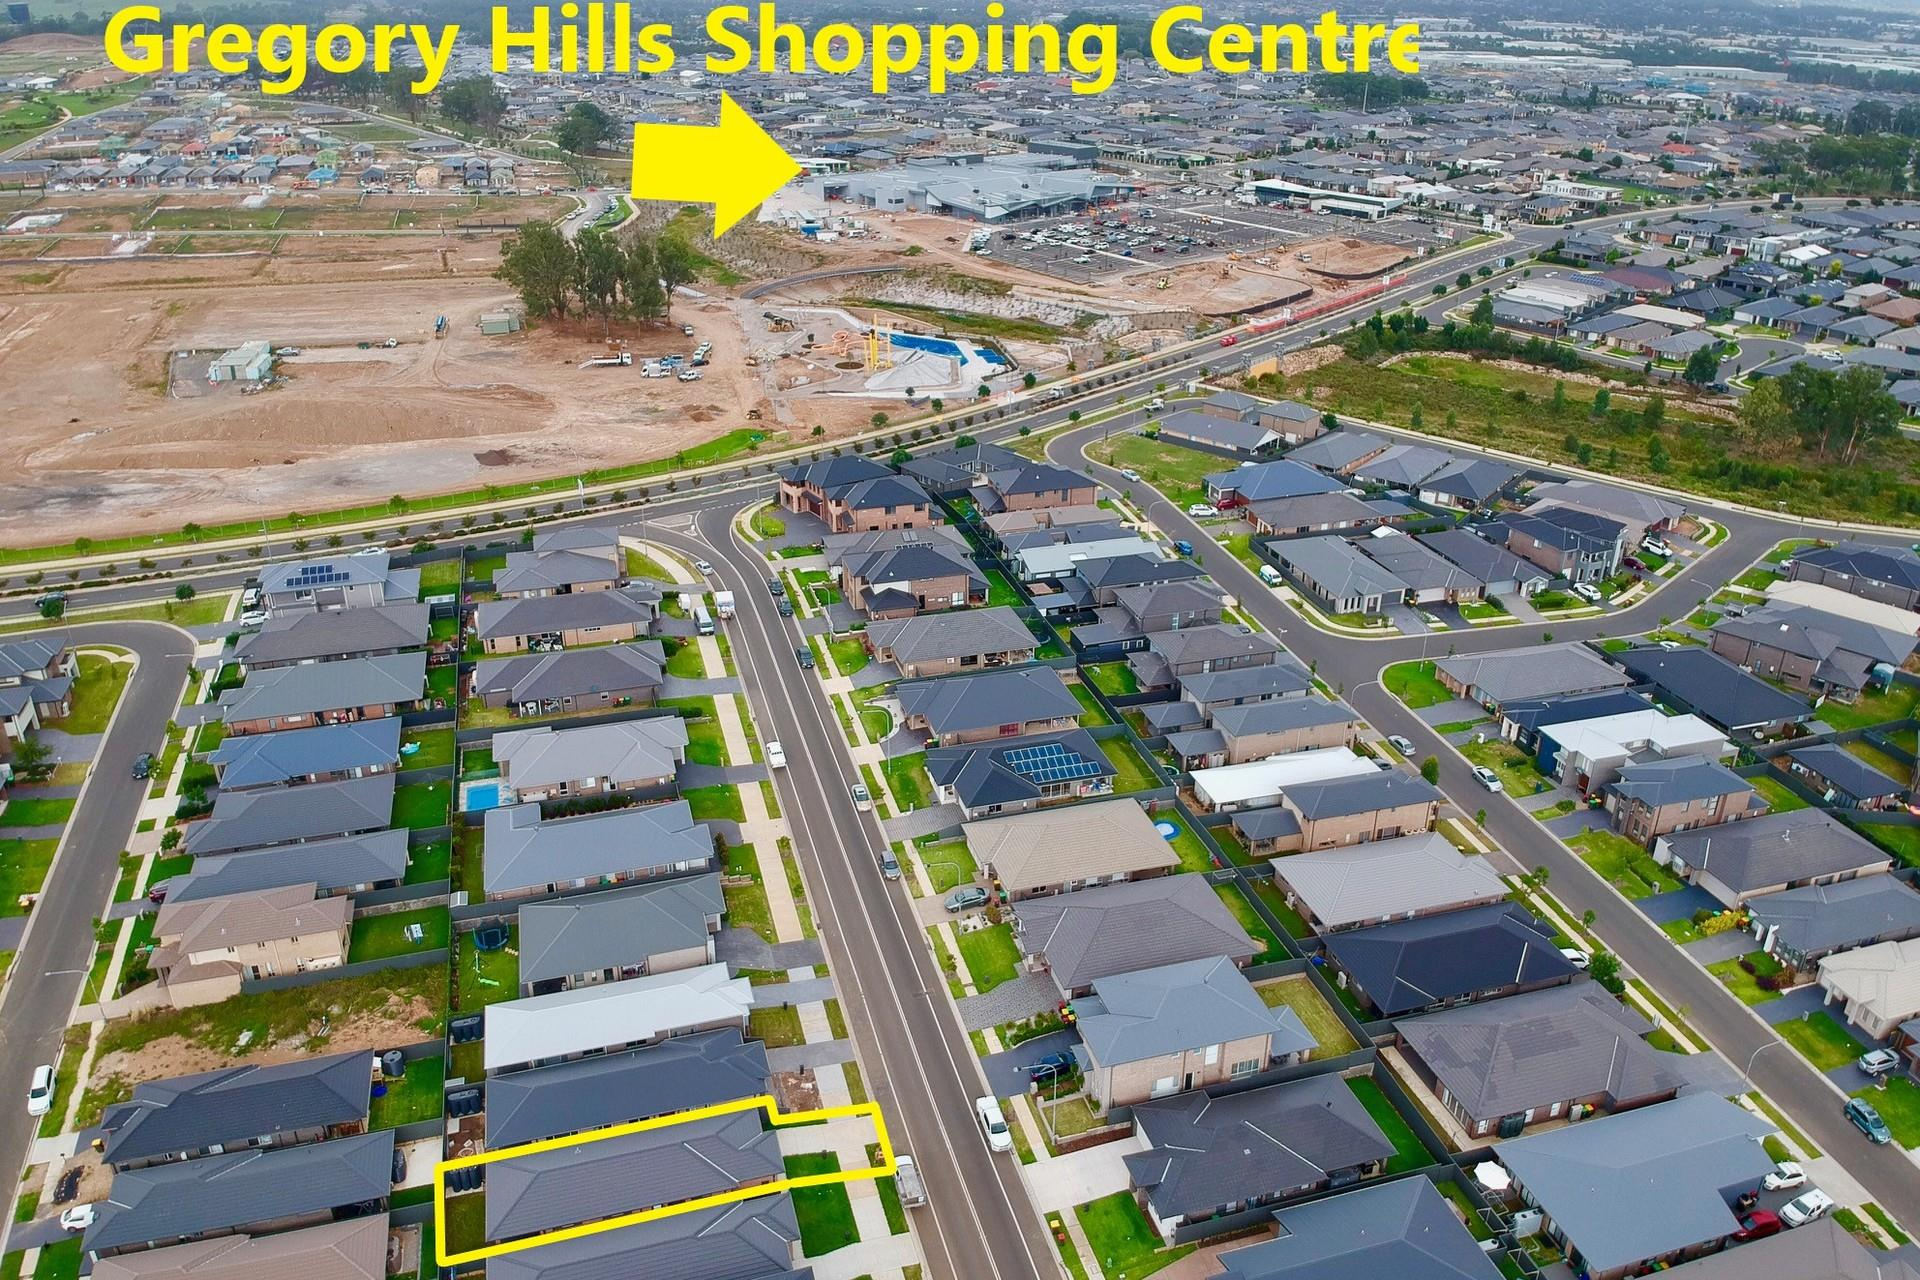 Gregory Hills, NSW 2557, address available on request